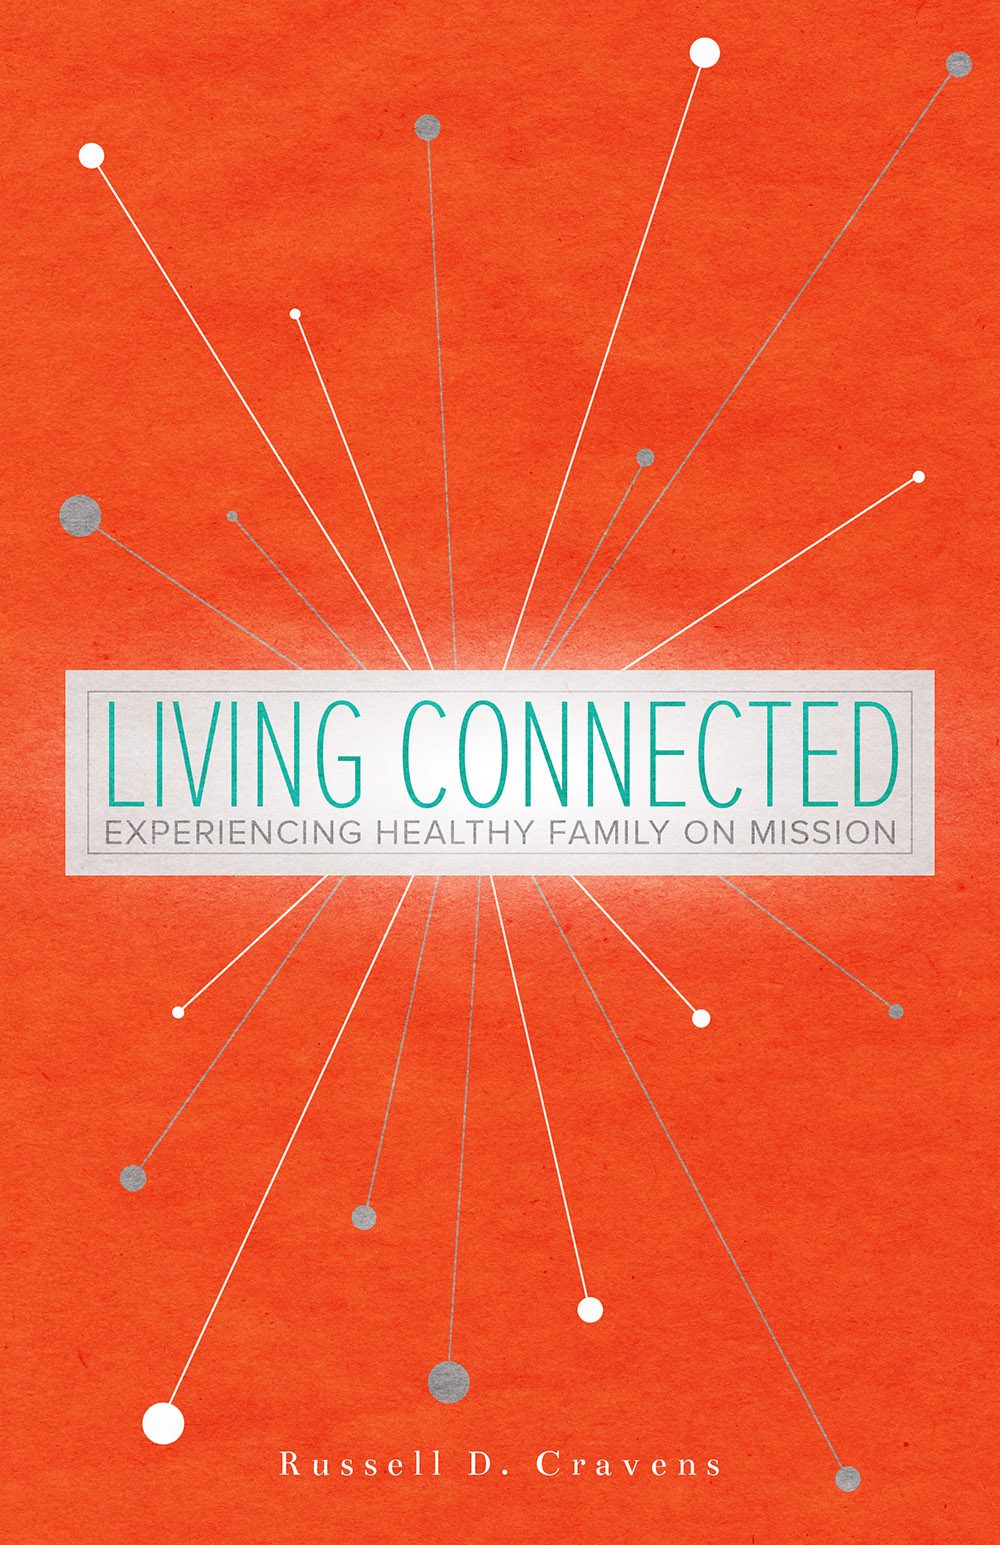 Living Connected Cover - Comp 01.jpg